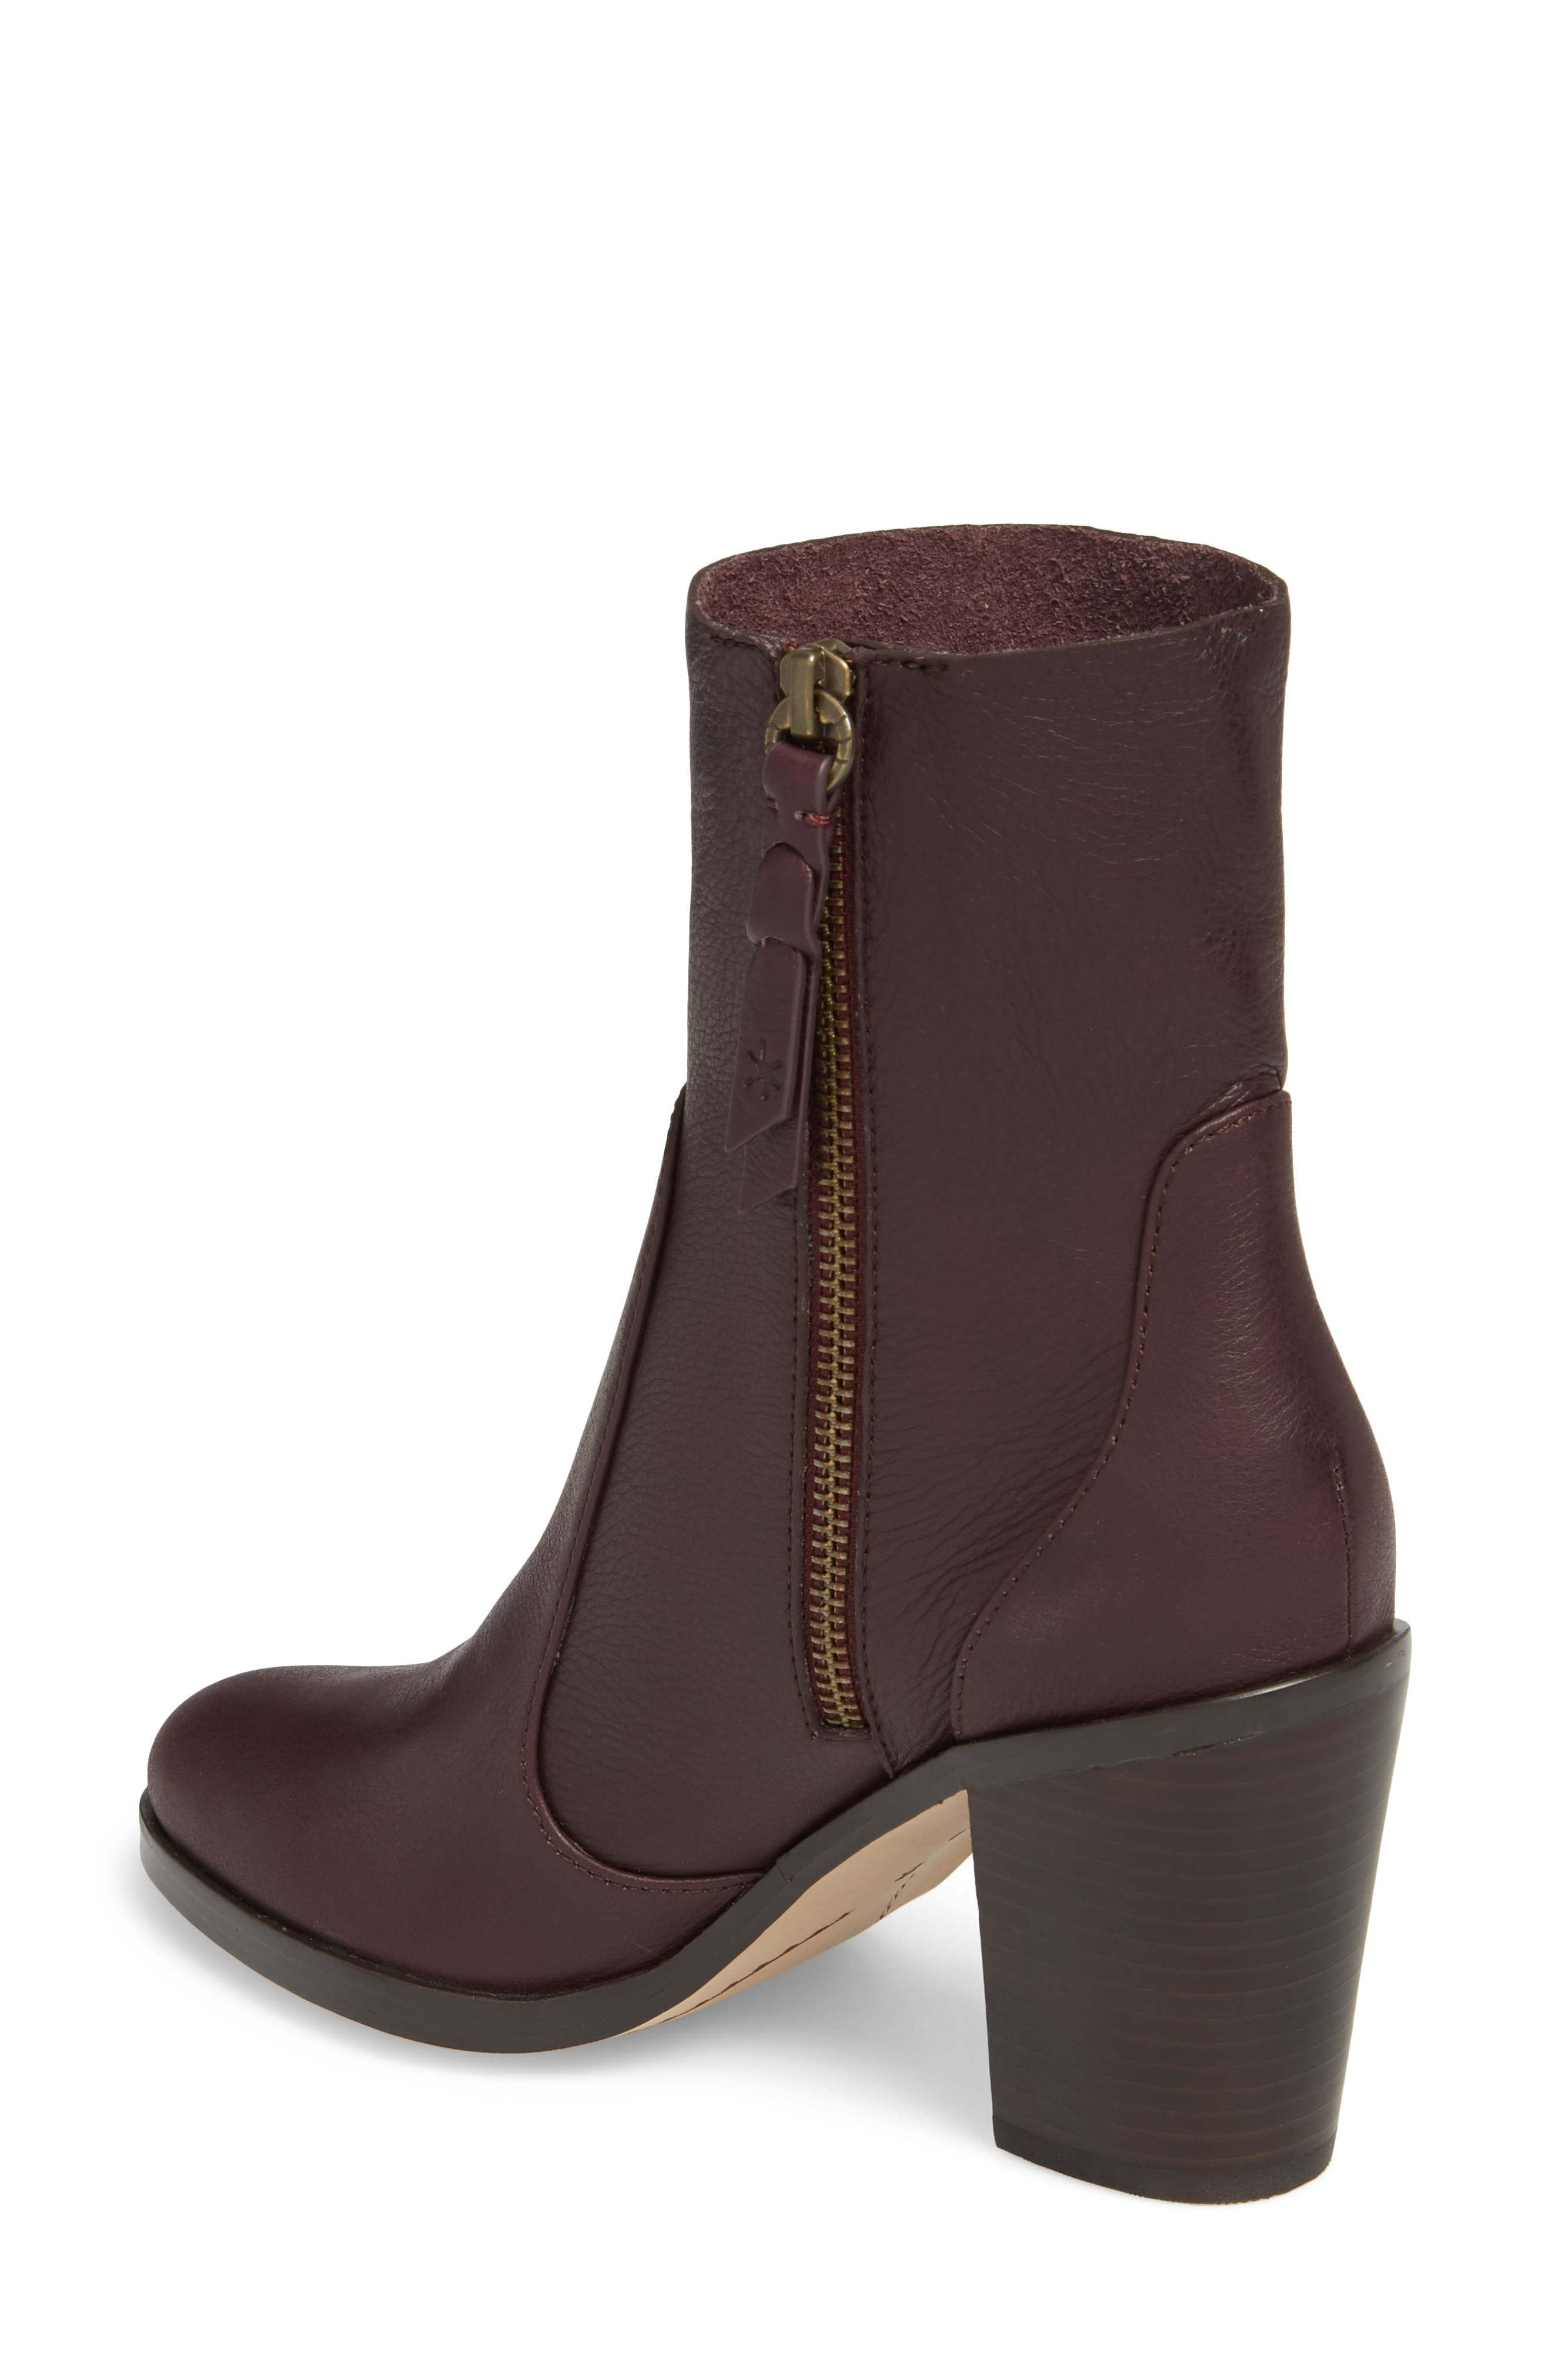 Roselyn Bootie,                             Alternate thumbnail 2, color,                             DEEP PLUM LEATHER